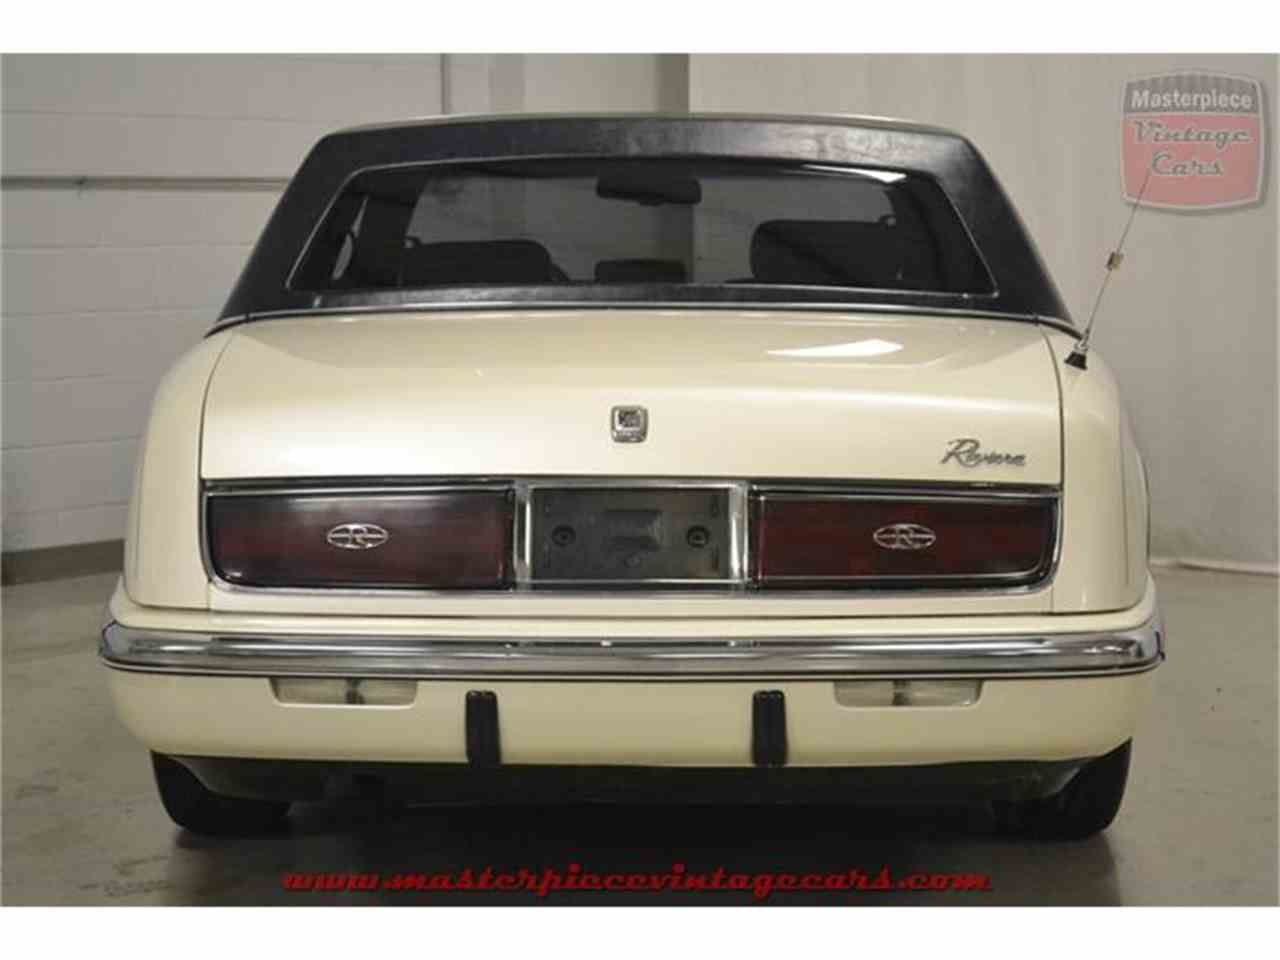 Large Picture of 1990 Riviera - $5,950.00 Offered by Masterpiece Vintage Cars - IRZC